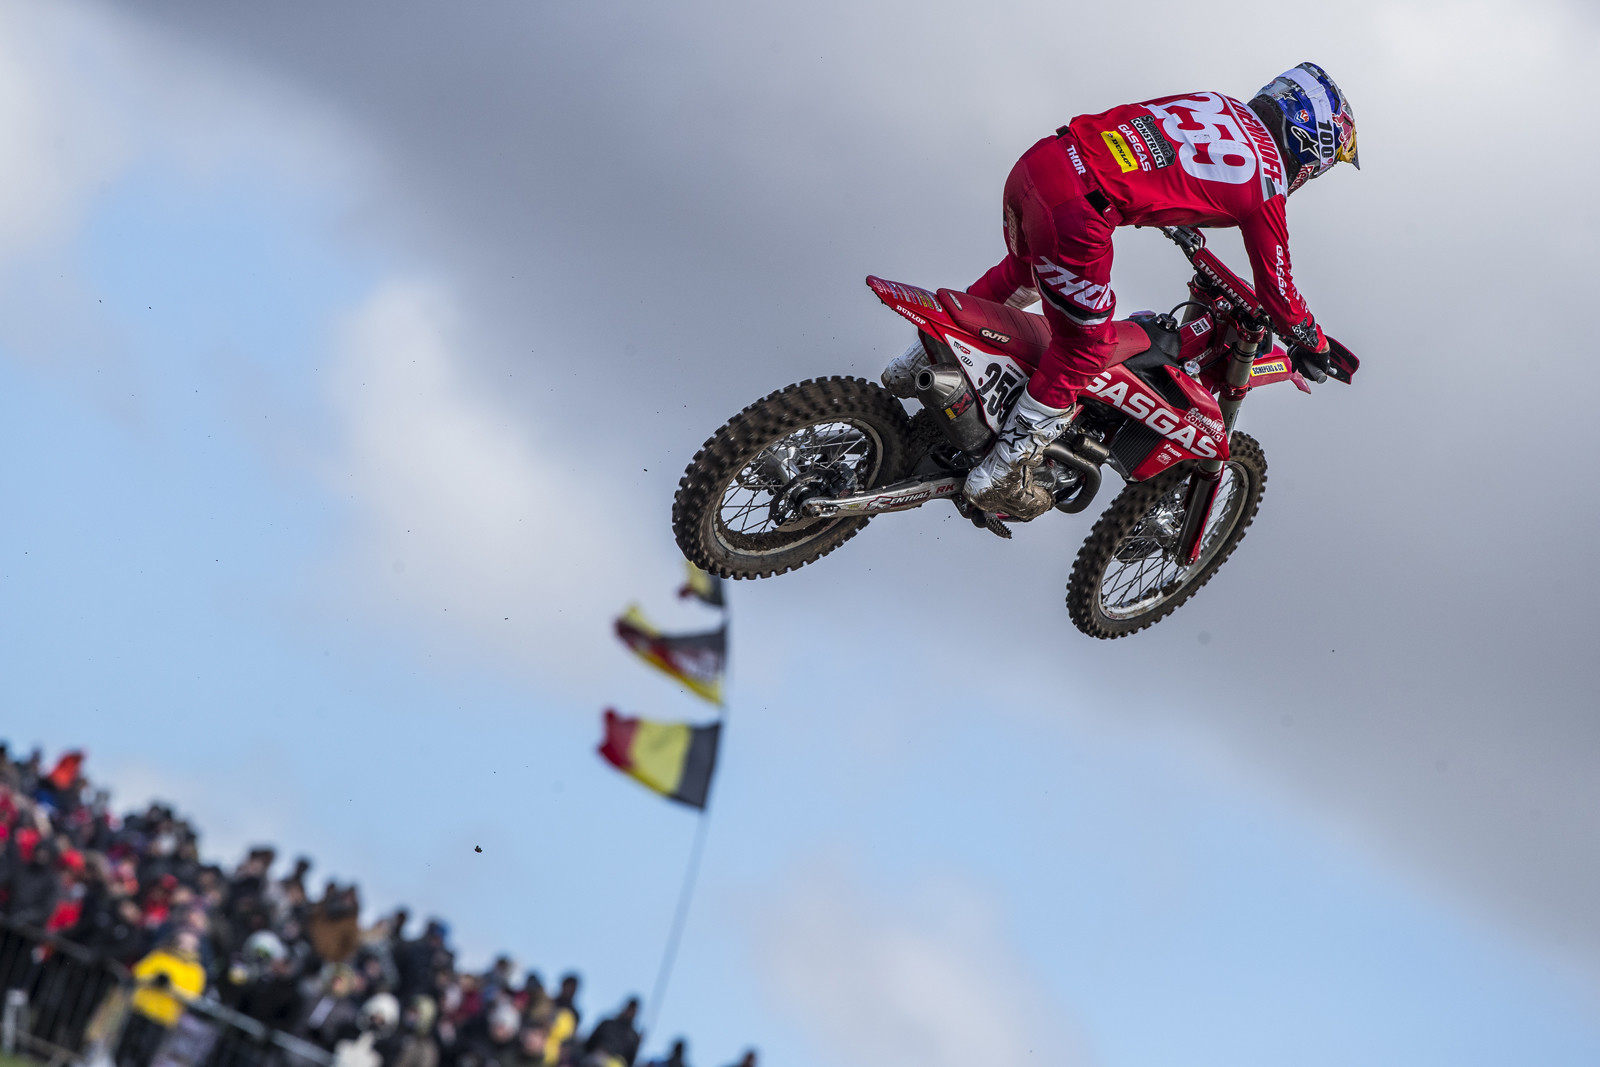 """MXGP of Great Britain: Glenn Coldenhoff was looking good at the beginning of the season. This was also the first look at the """"GASGAS"""" bikes but they literally were just red KTMs at this point."""